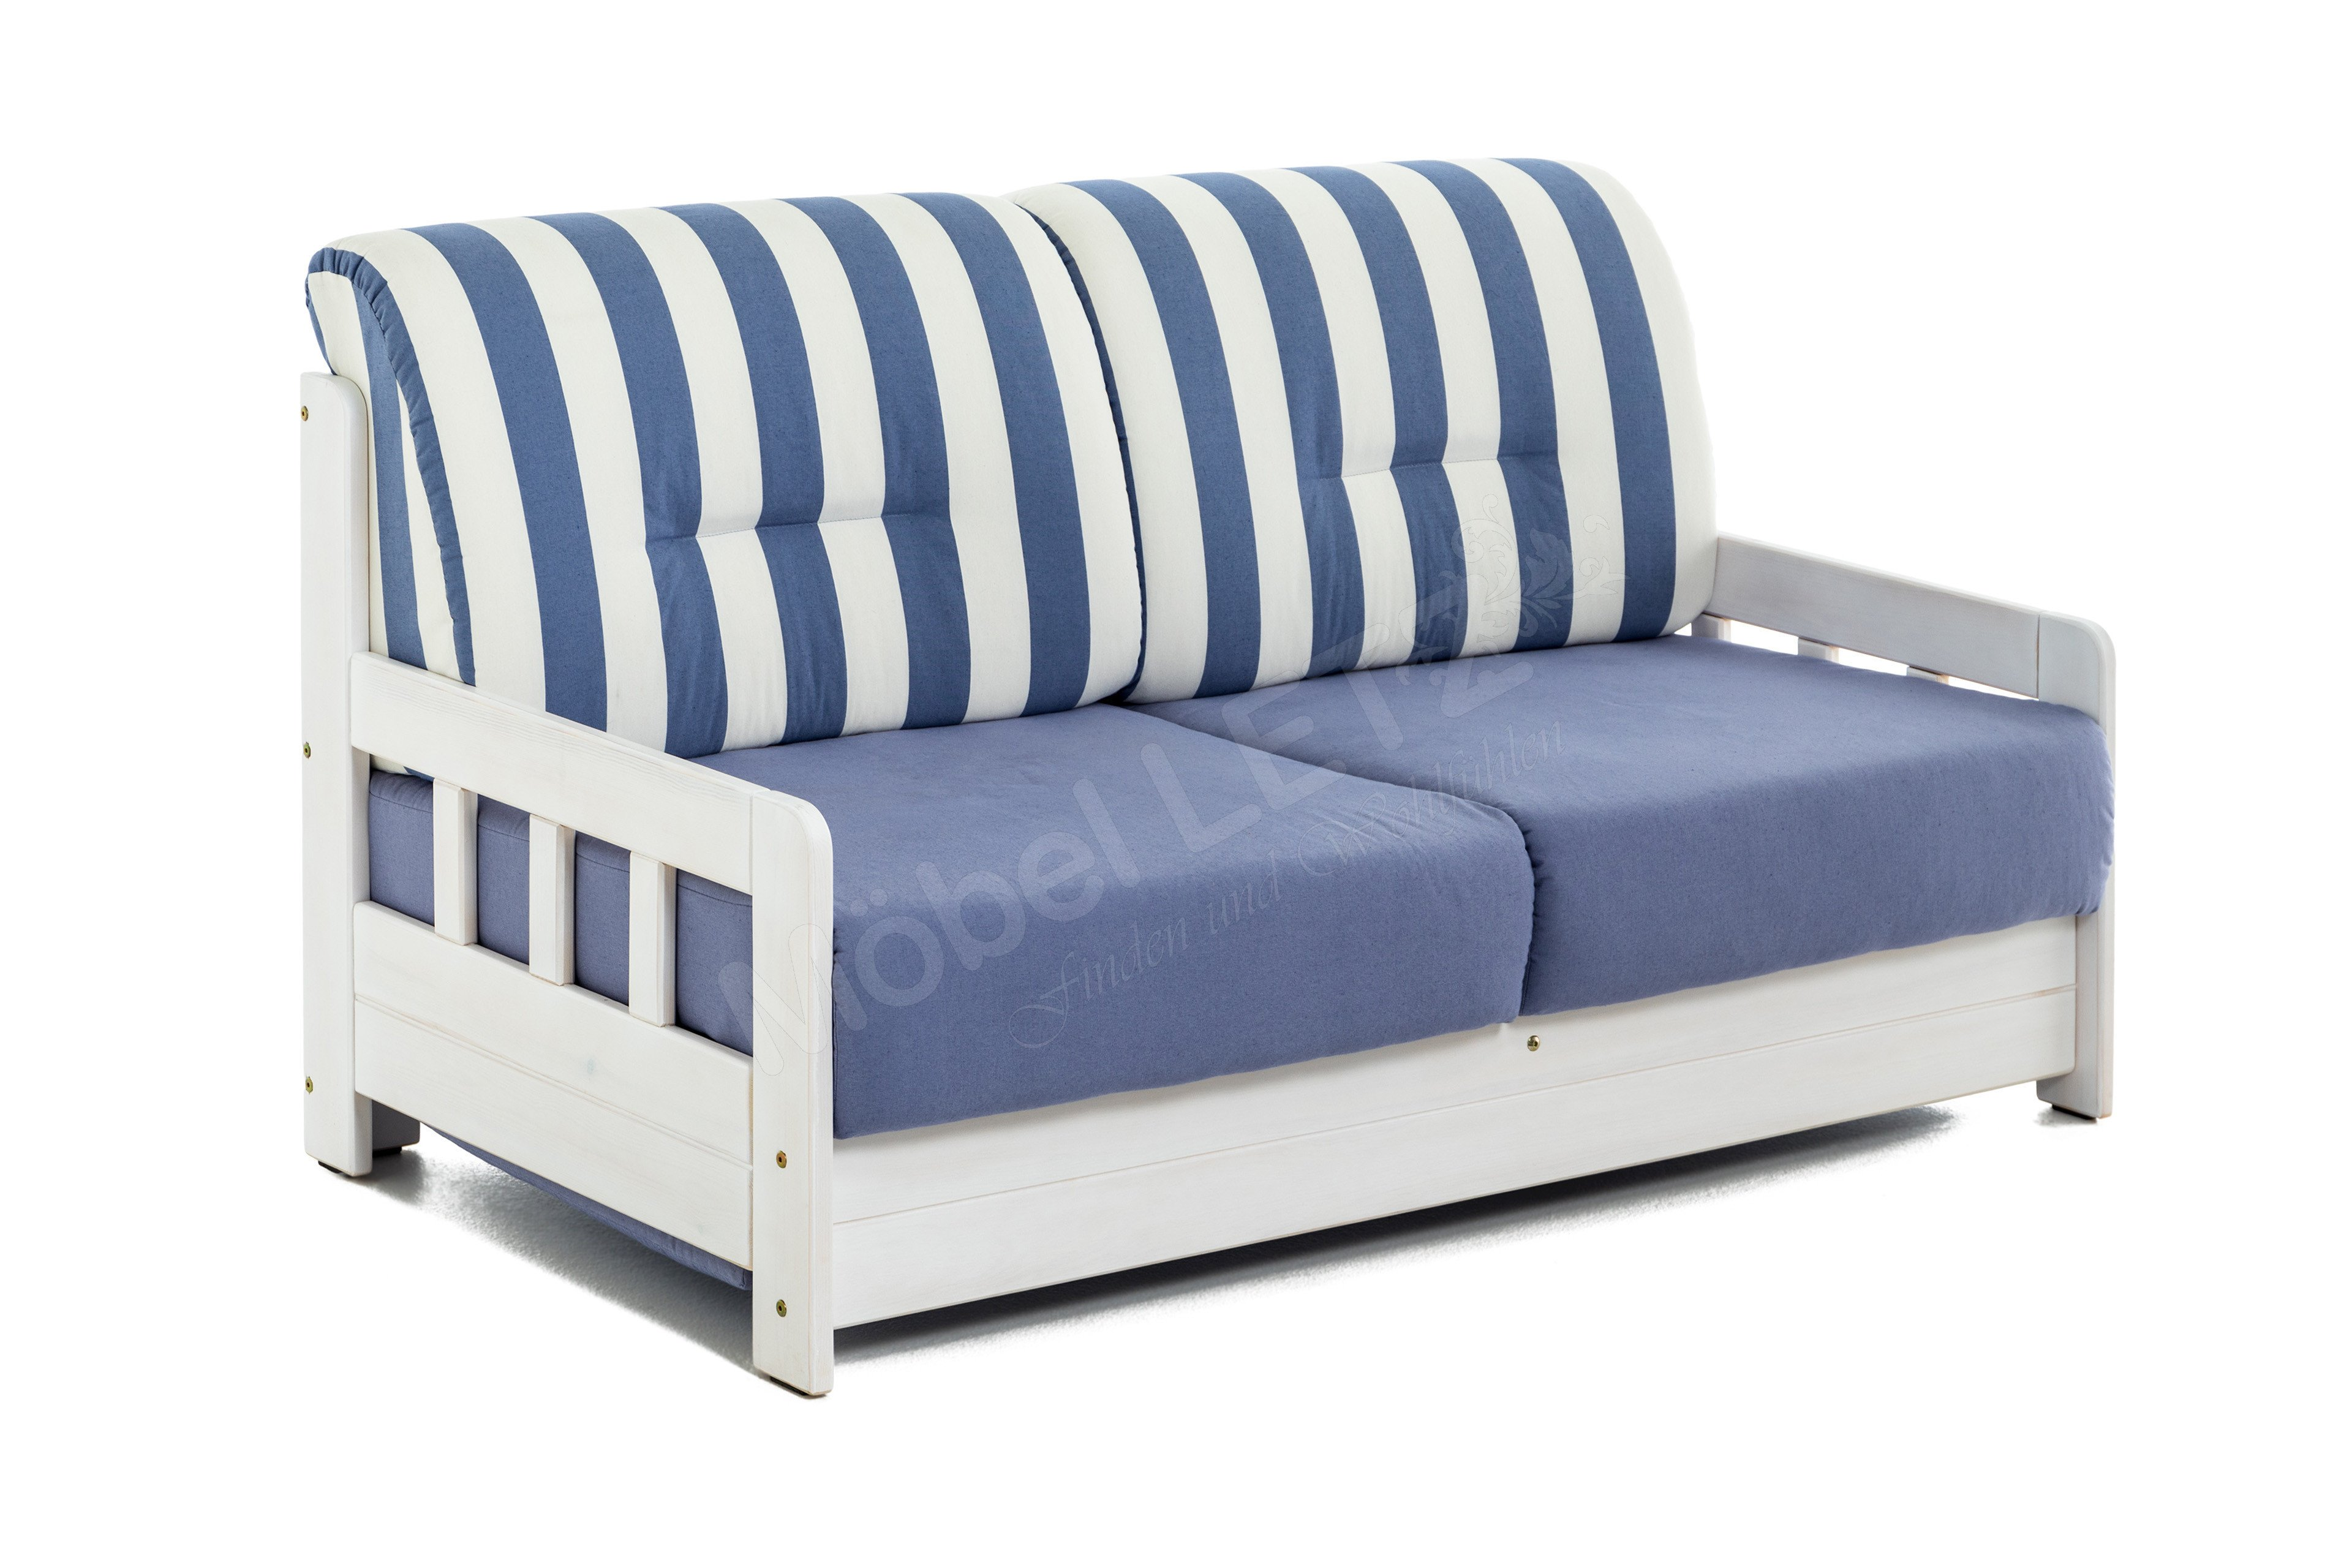 campi sofa blau wei gestreift von benformato m bel letz ihr online shop. Black Bedroom Furniture Sets. Home Design Ideas